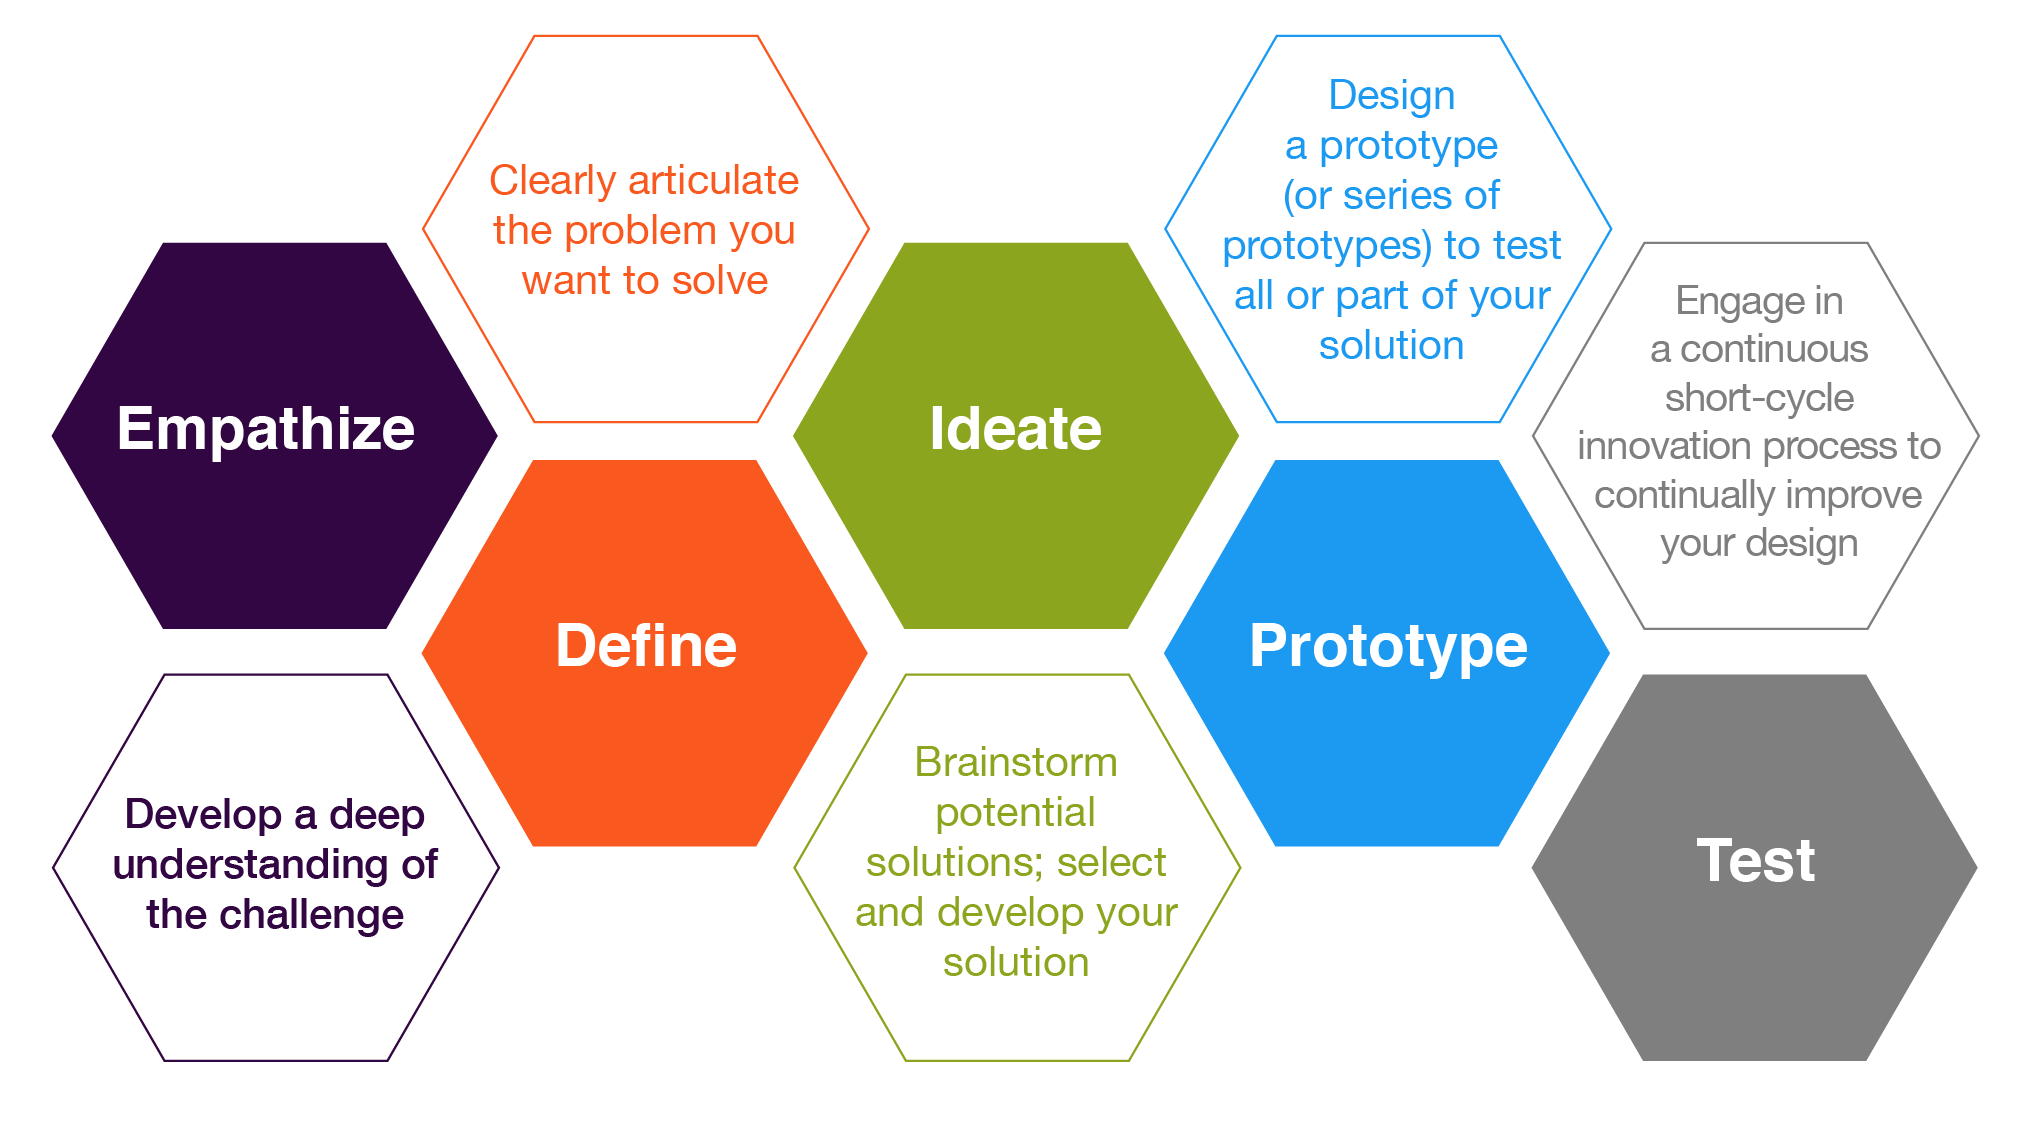 graphic of five Design Thinking steps - empathize, define, ideate prototype, test